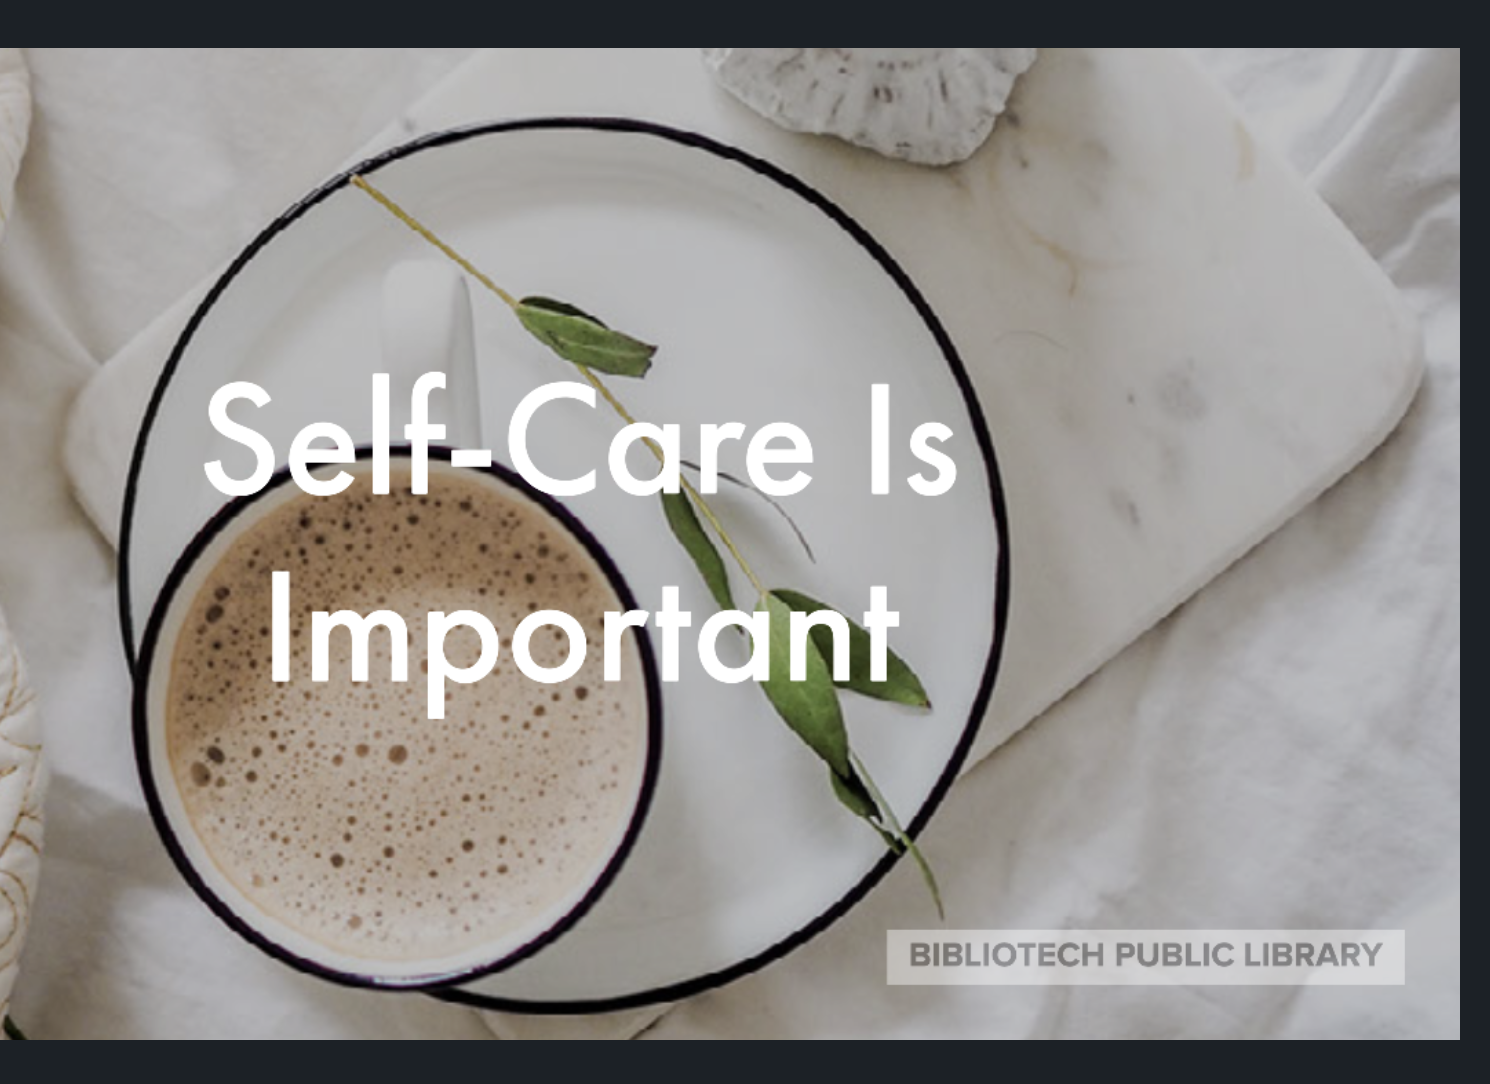 Self-care is important